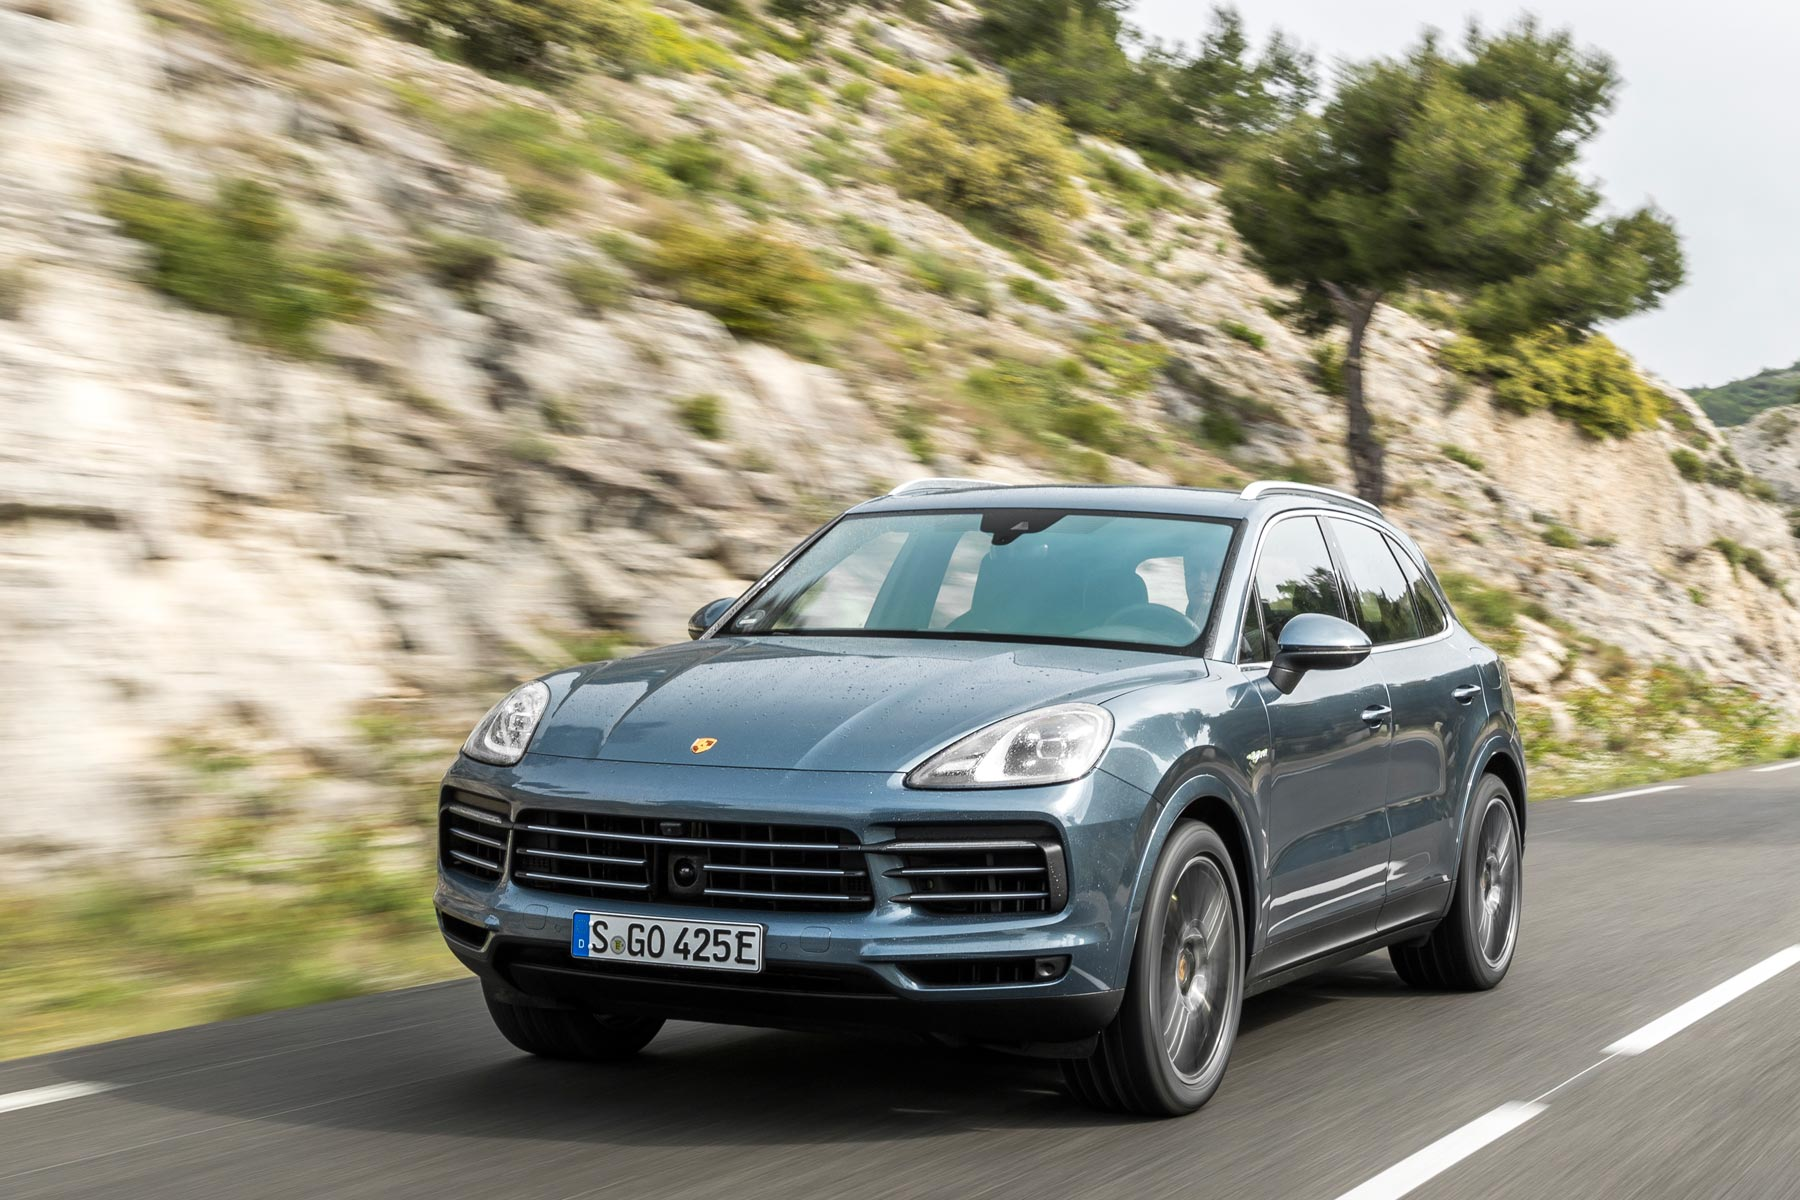 2018 Porsche Cayenne E Hybrid Review Demolishing The Case For Sel